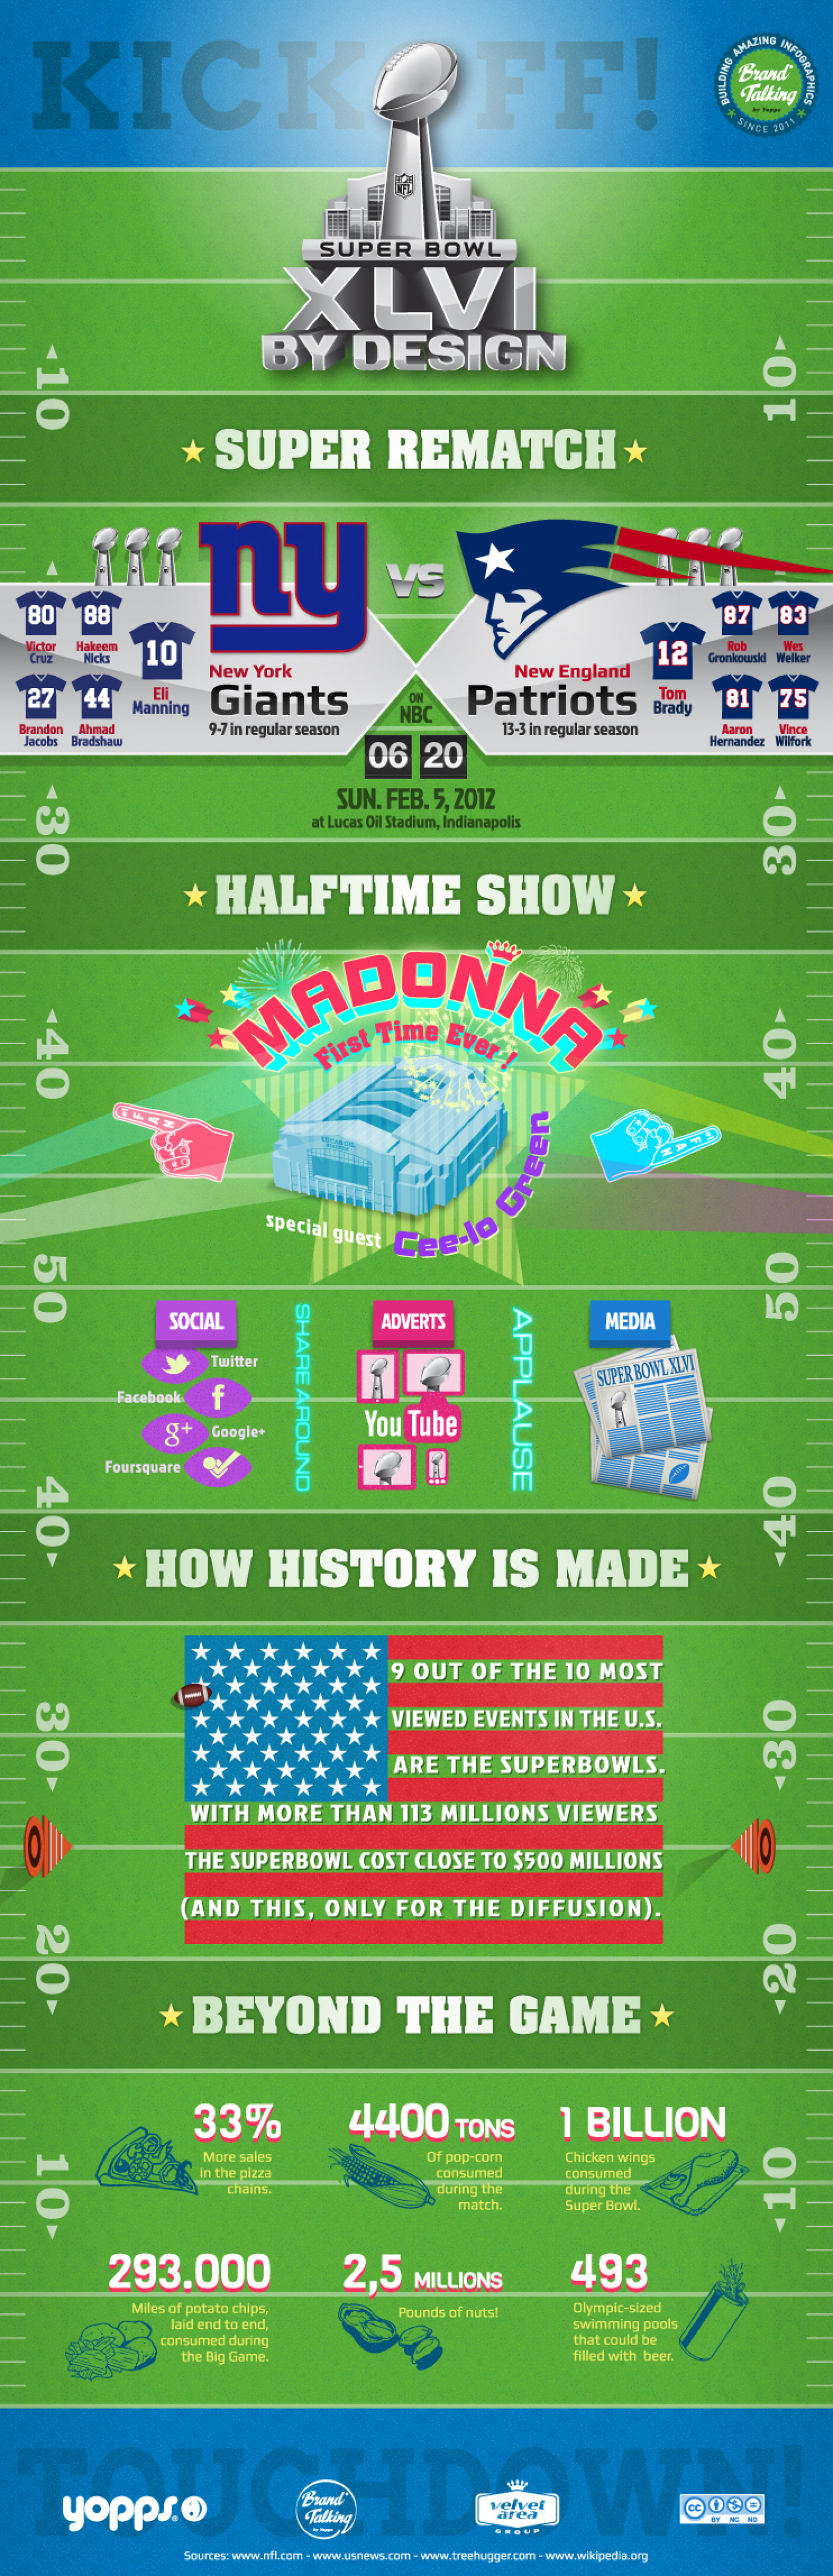 Super Bowl XLVI by design Infographic